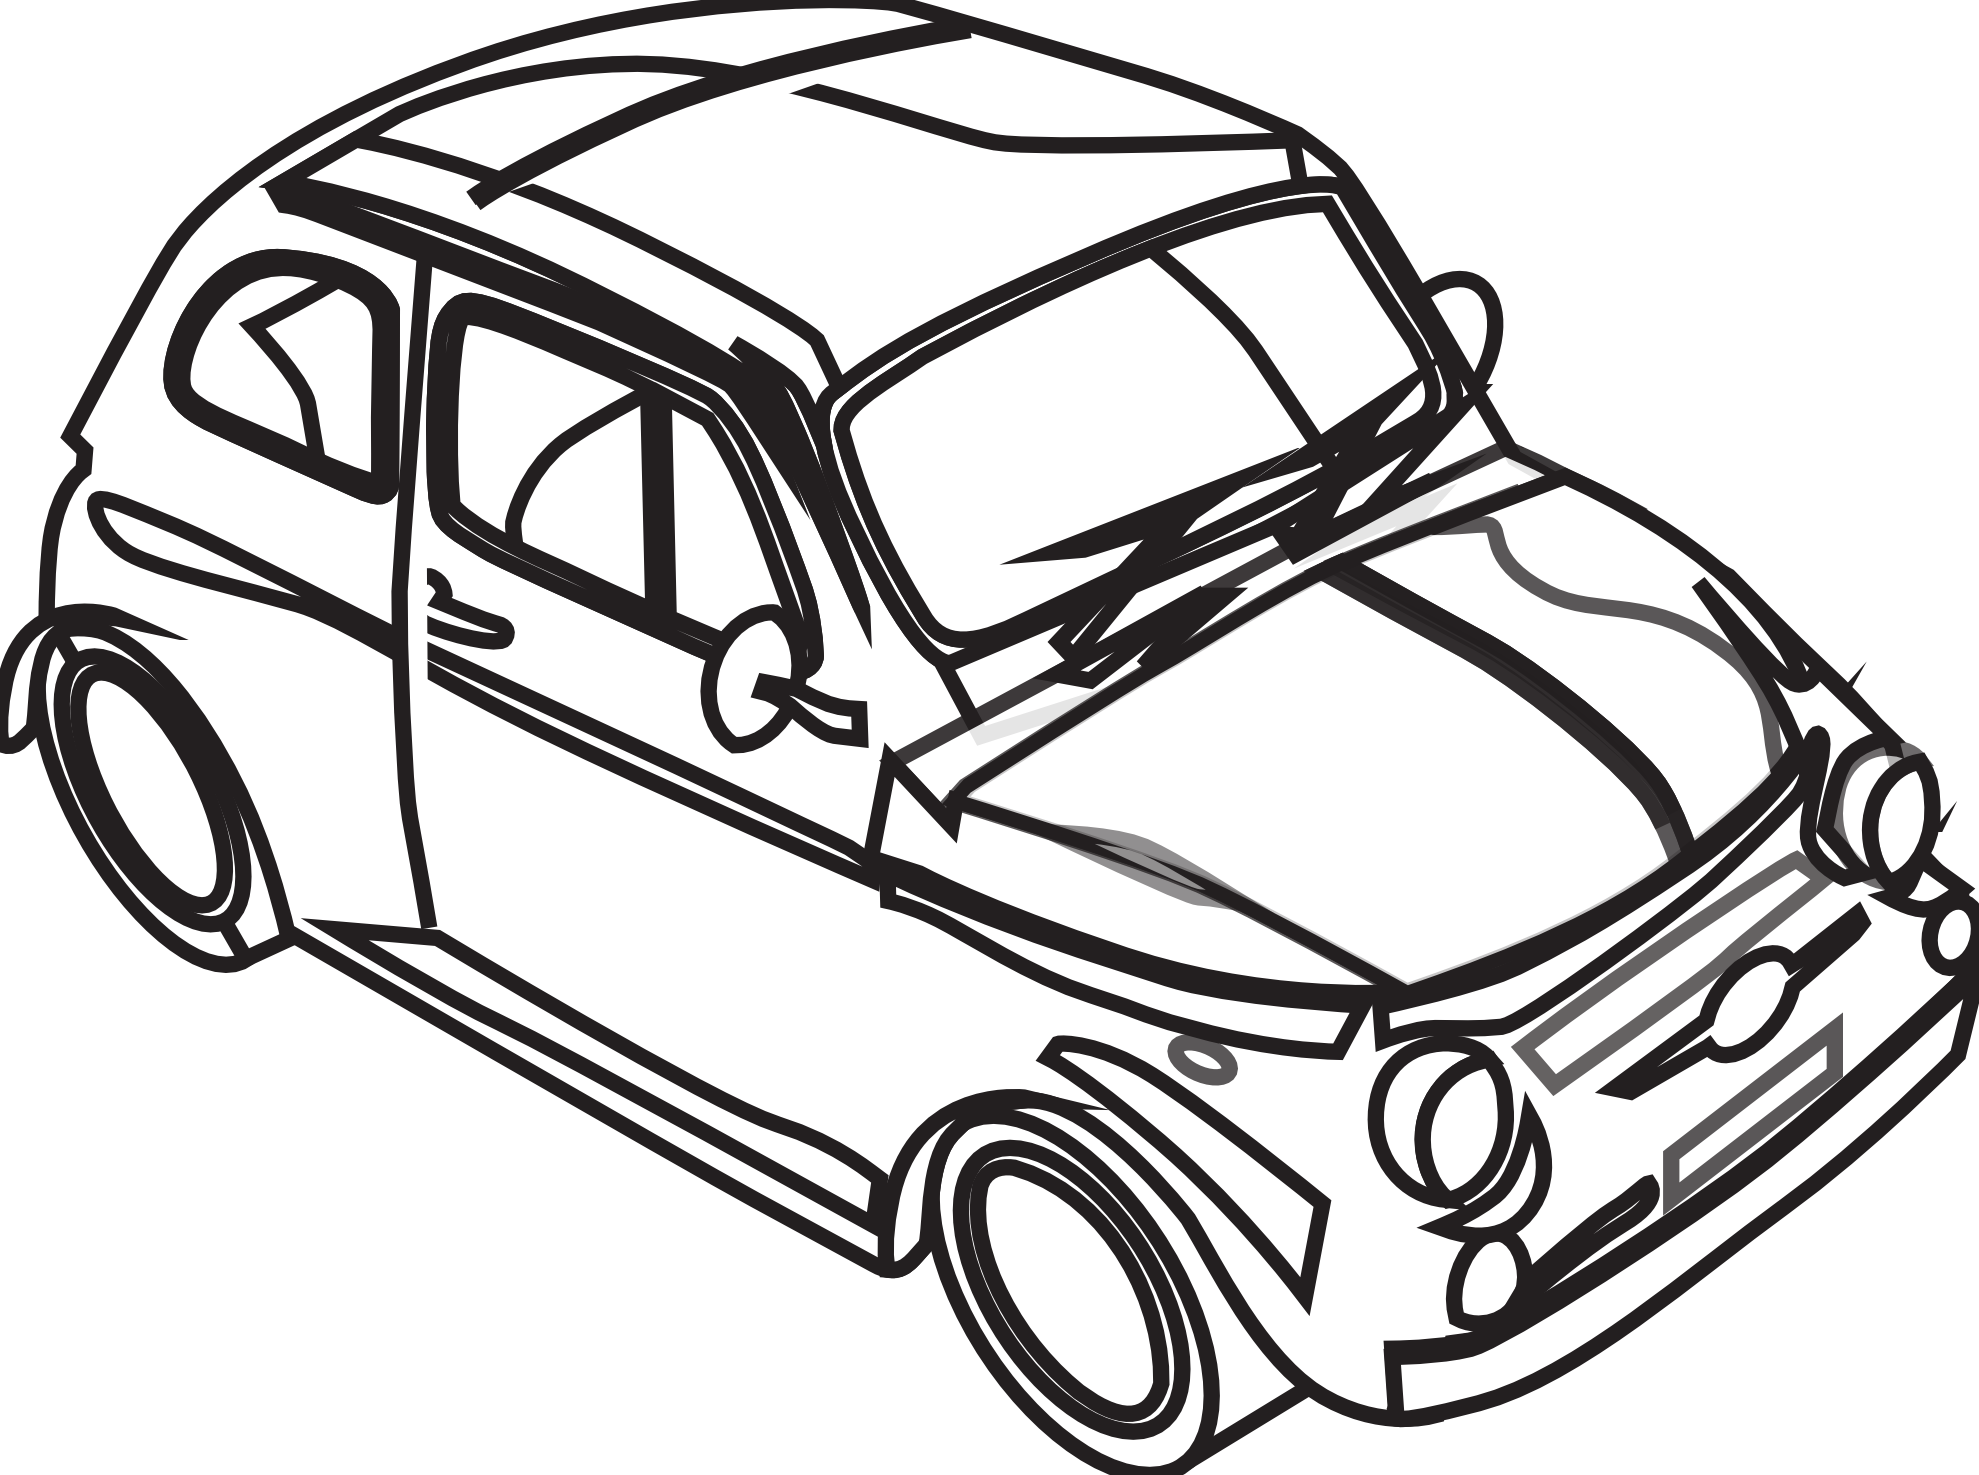 Cars b&w clipart vector freeuse library Free Black And White Car Drawings, Download Free Clip Art, Free Clip ... vector freeuse library